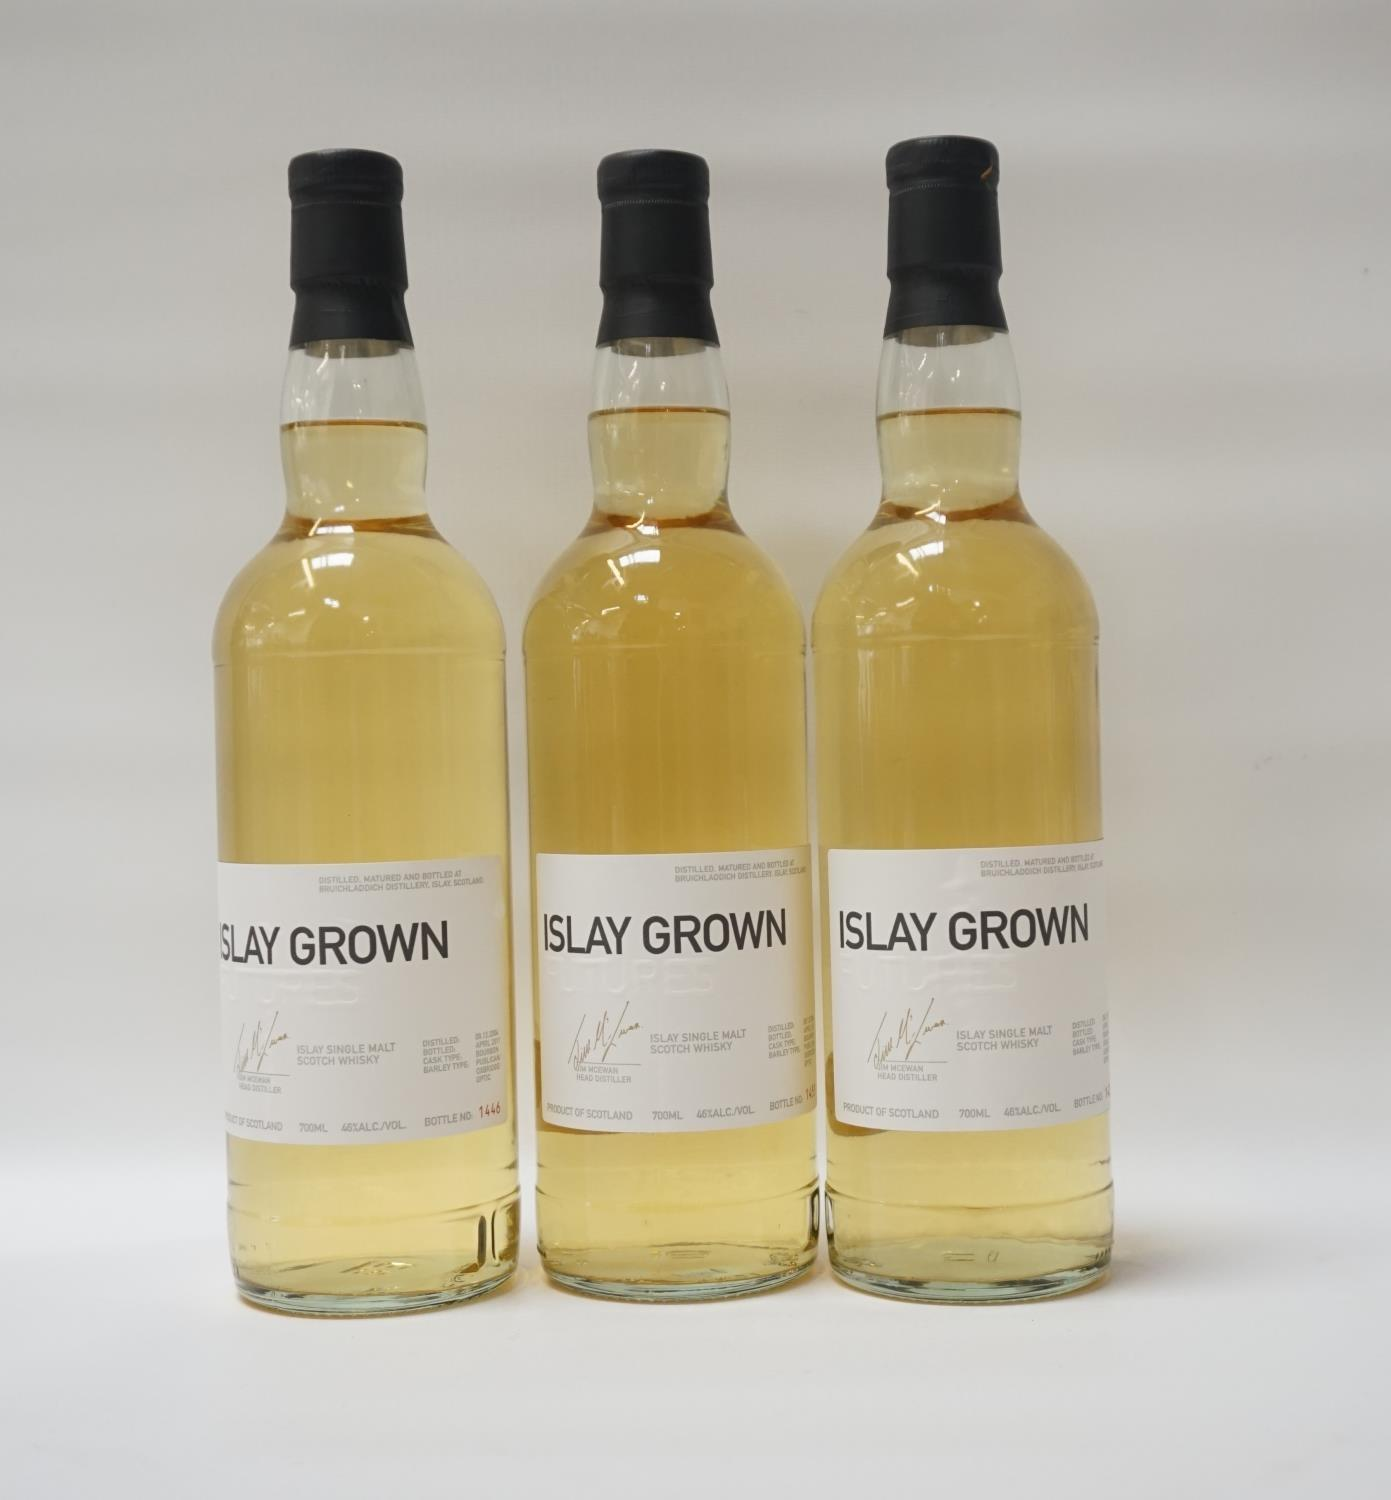 Lot 23 - THREE BOTTLES OF BRUICHLADDICH FUTURES ISLAY GROWN Bruichladdich Distillery offered individuals